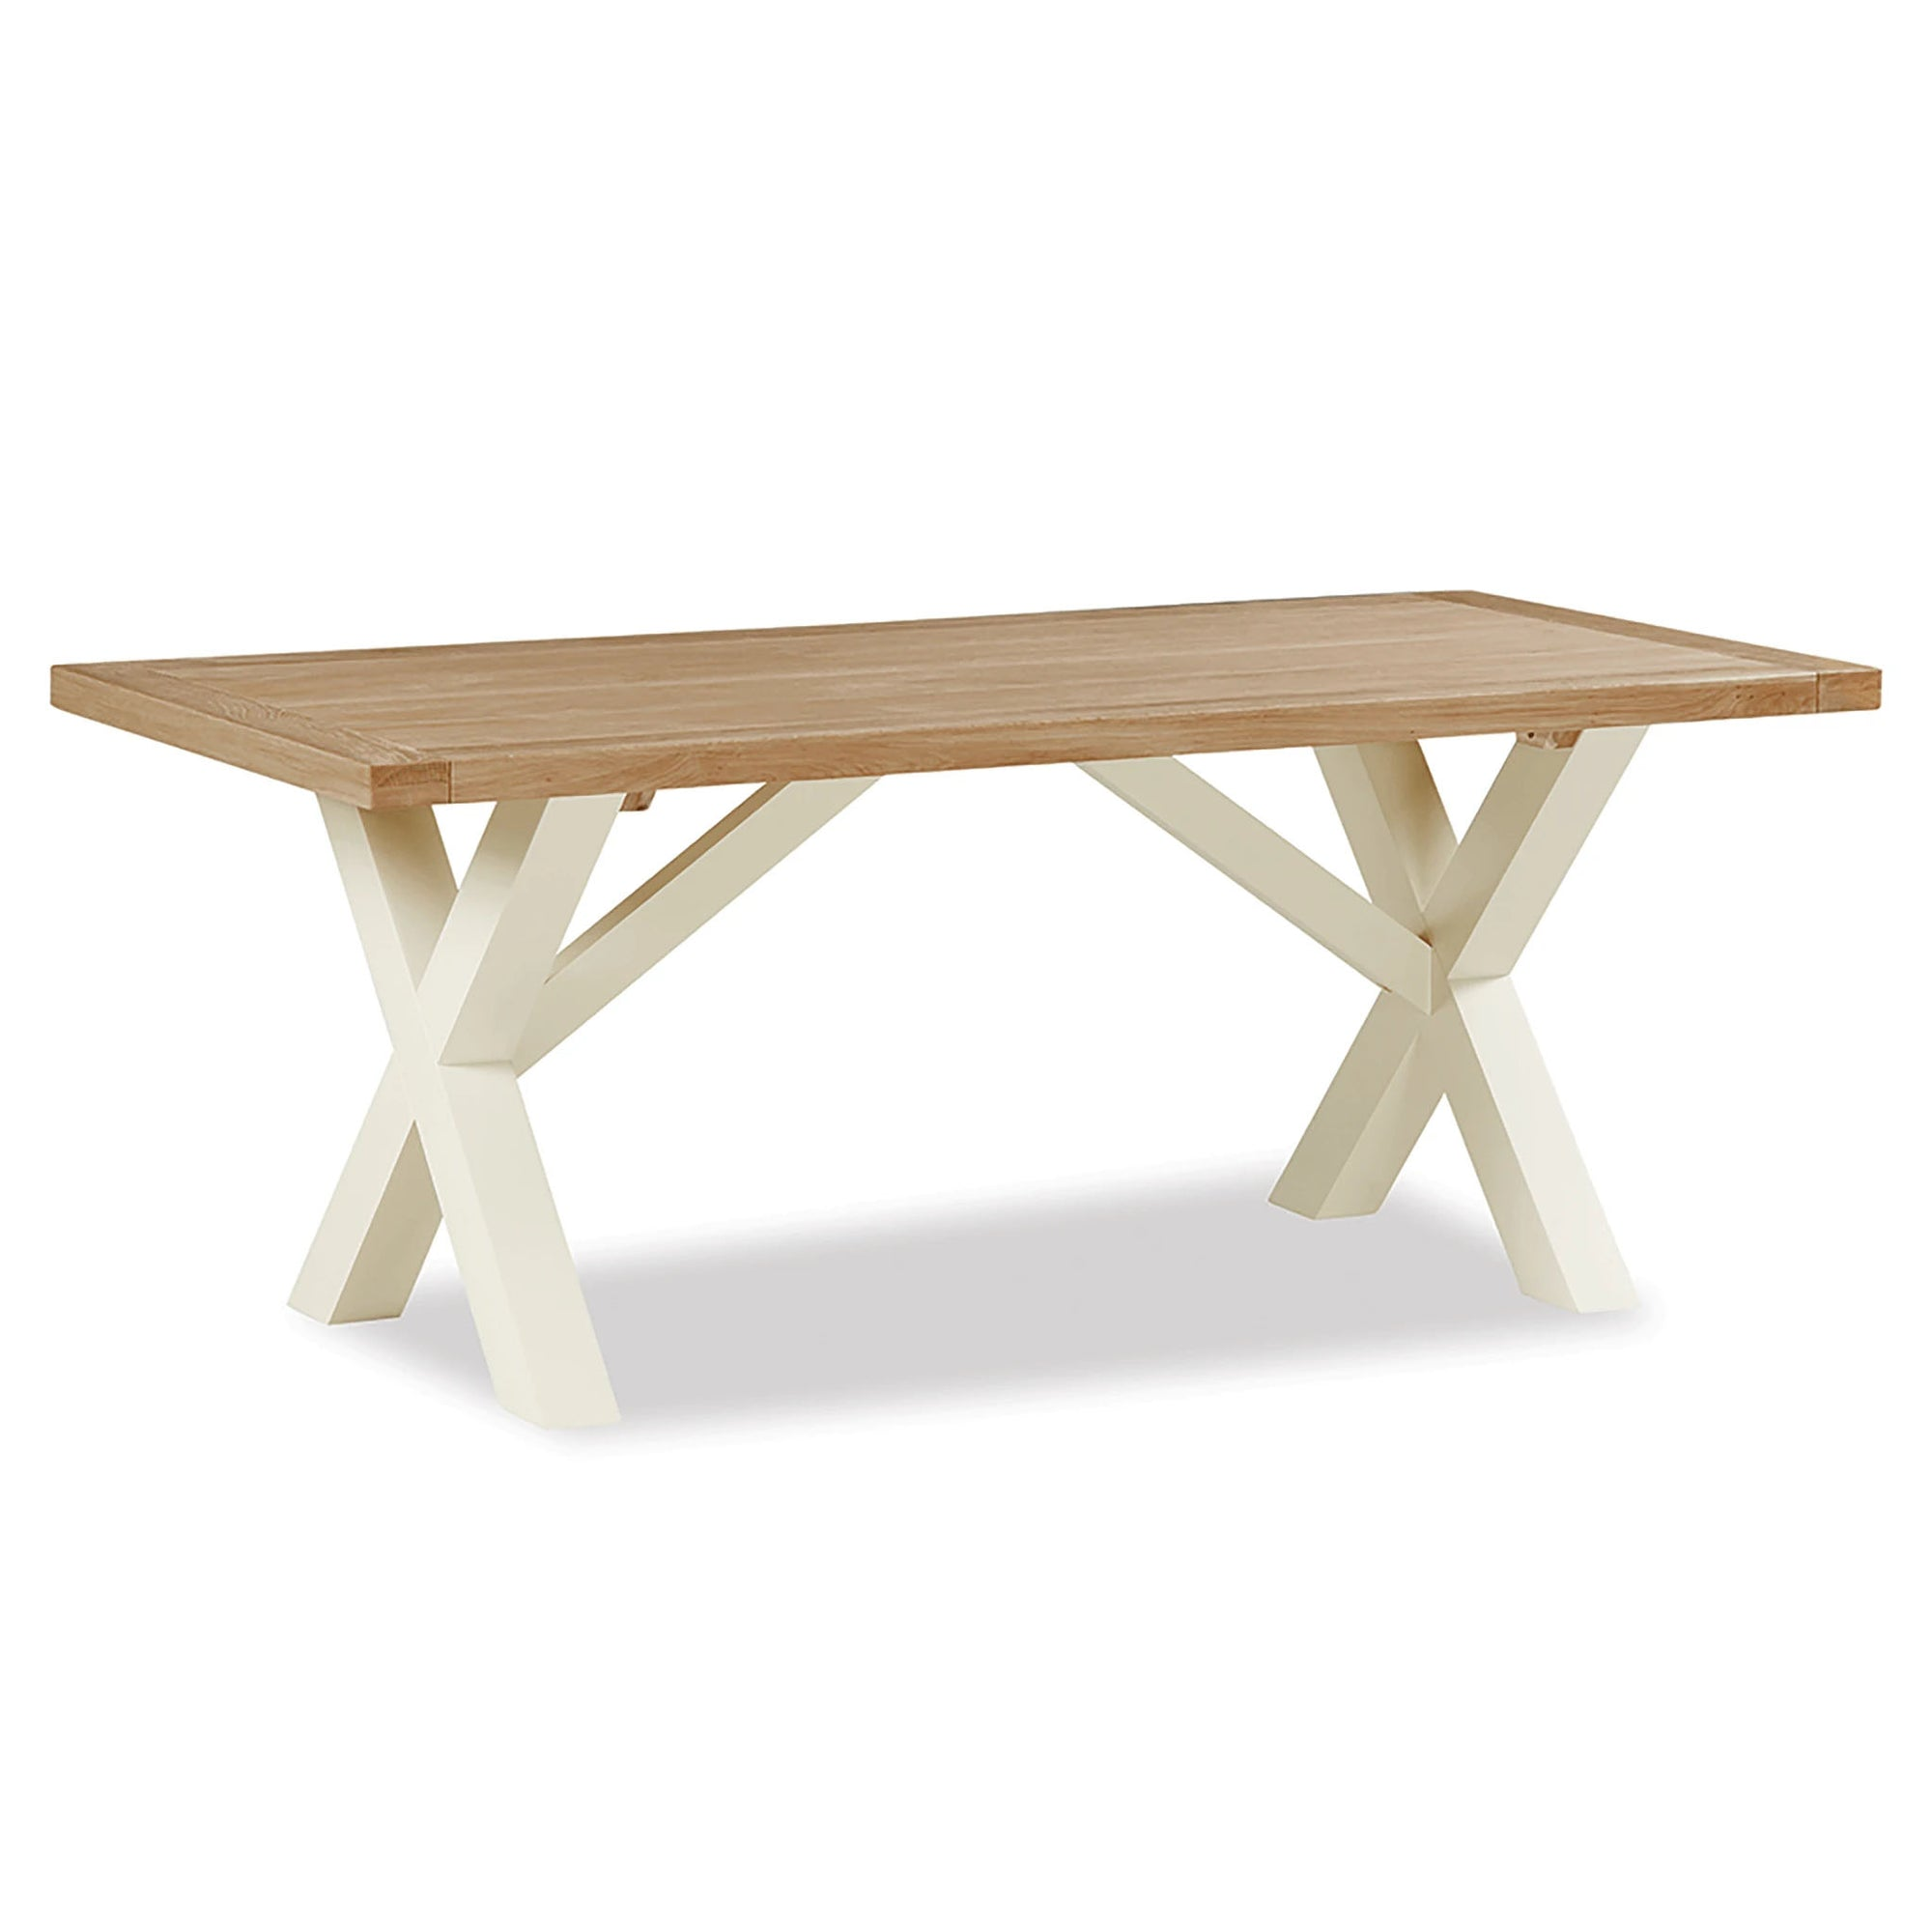 The Daymer Cream Oak Kitchen Cross Dining Table from Roseland Furniture